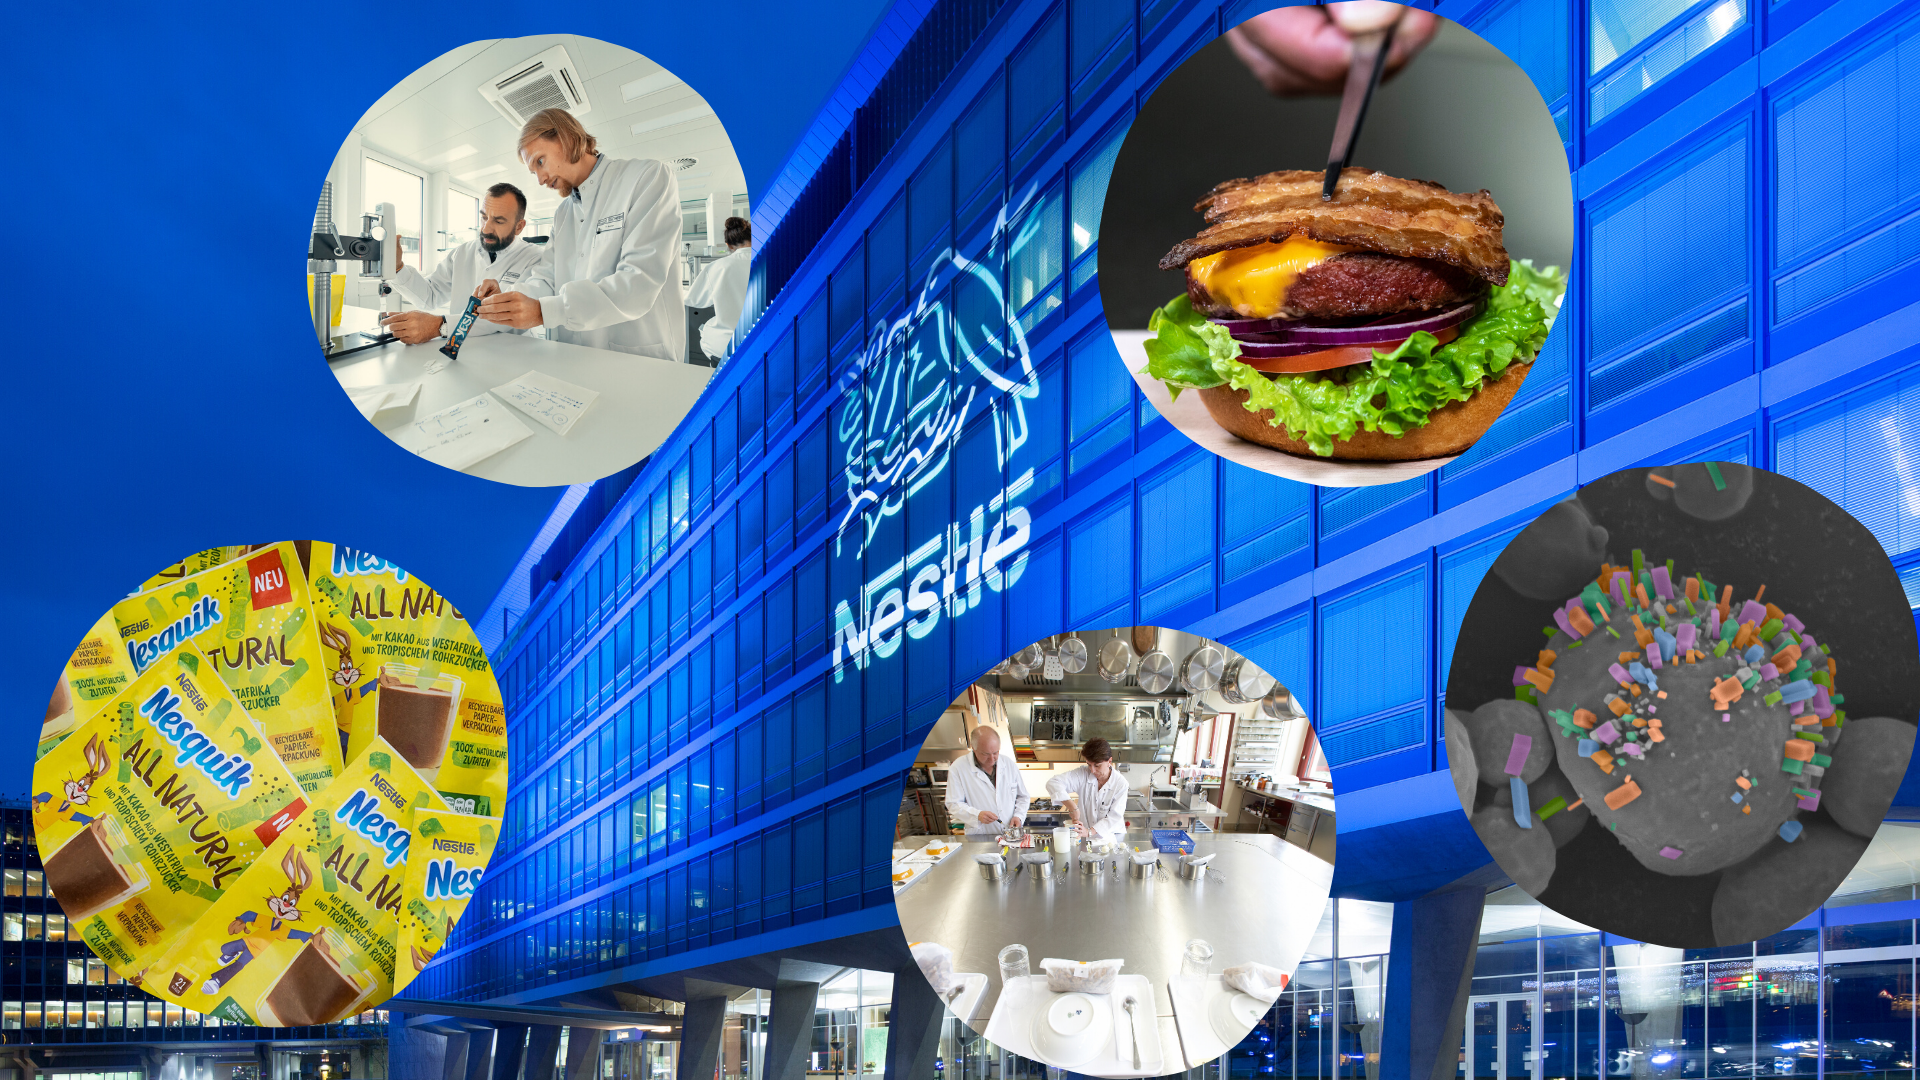 NESTLÉ: THE FUTURE OF FOOD IS NOW, THE FOOD OF THE FUTURE IS SERVED